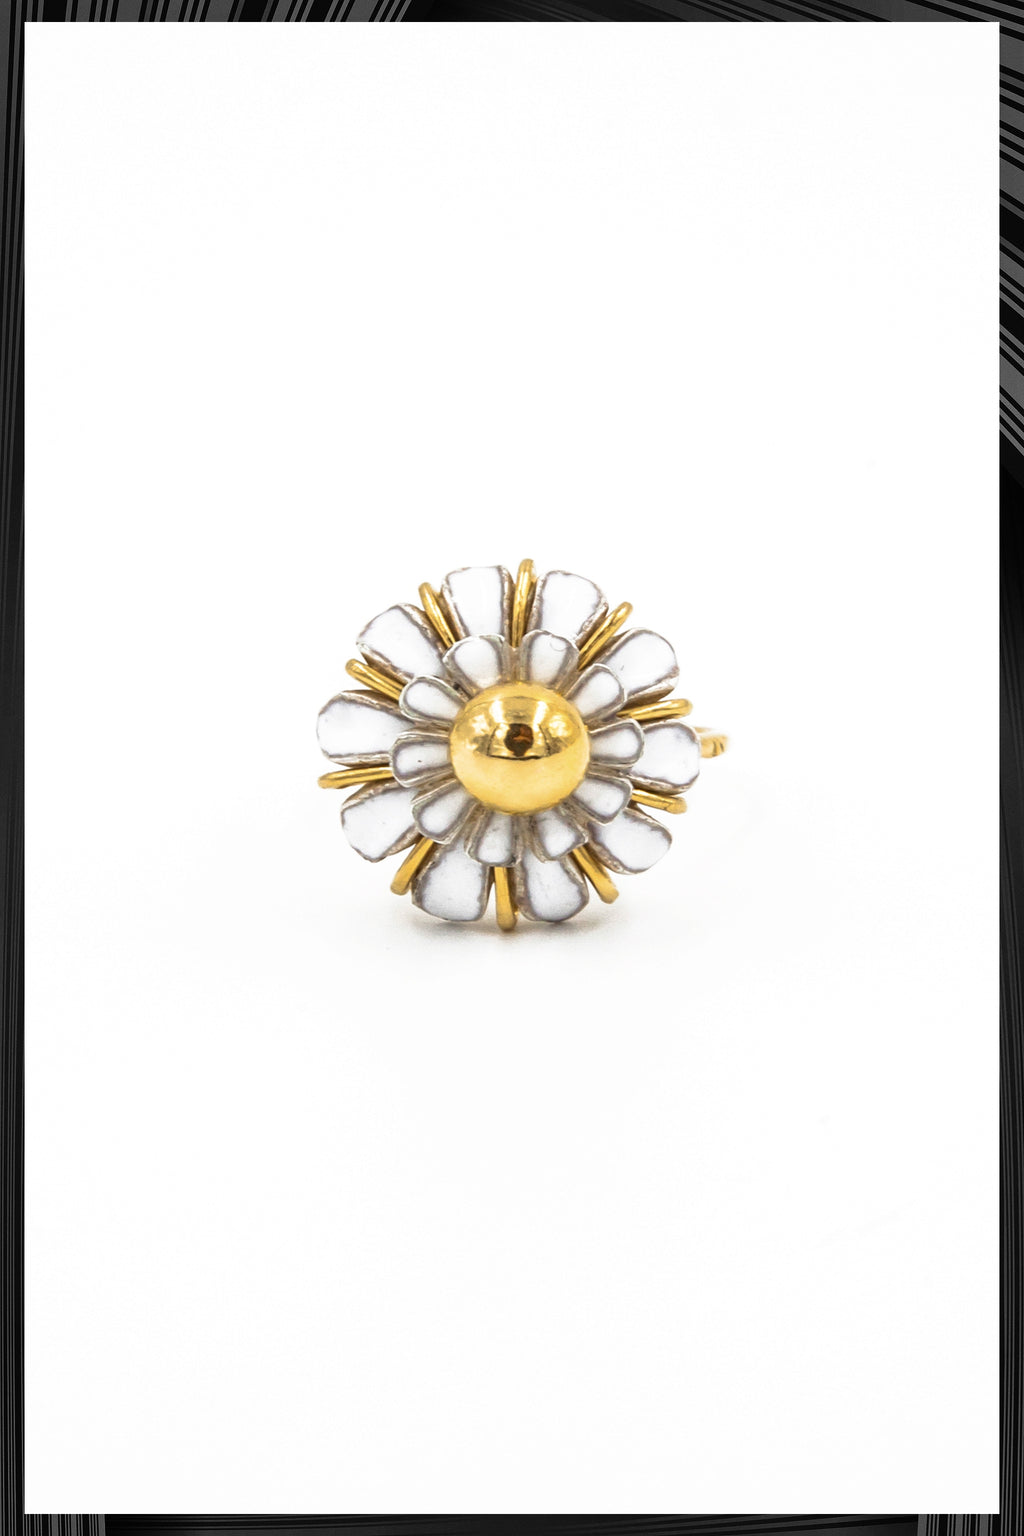 Daisy Ring | Free Delivery - Quick Shipping